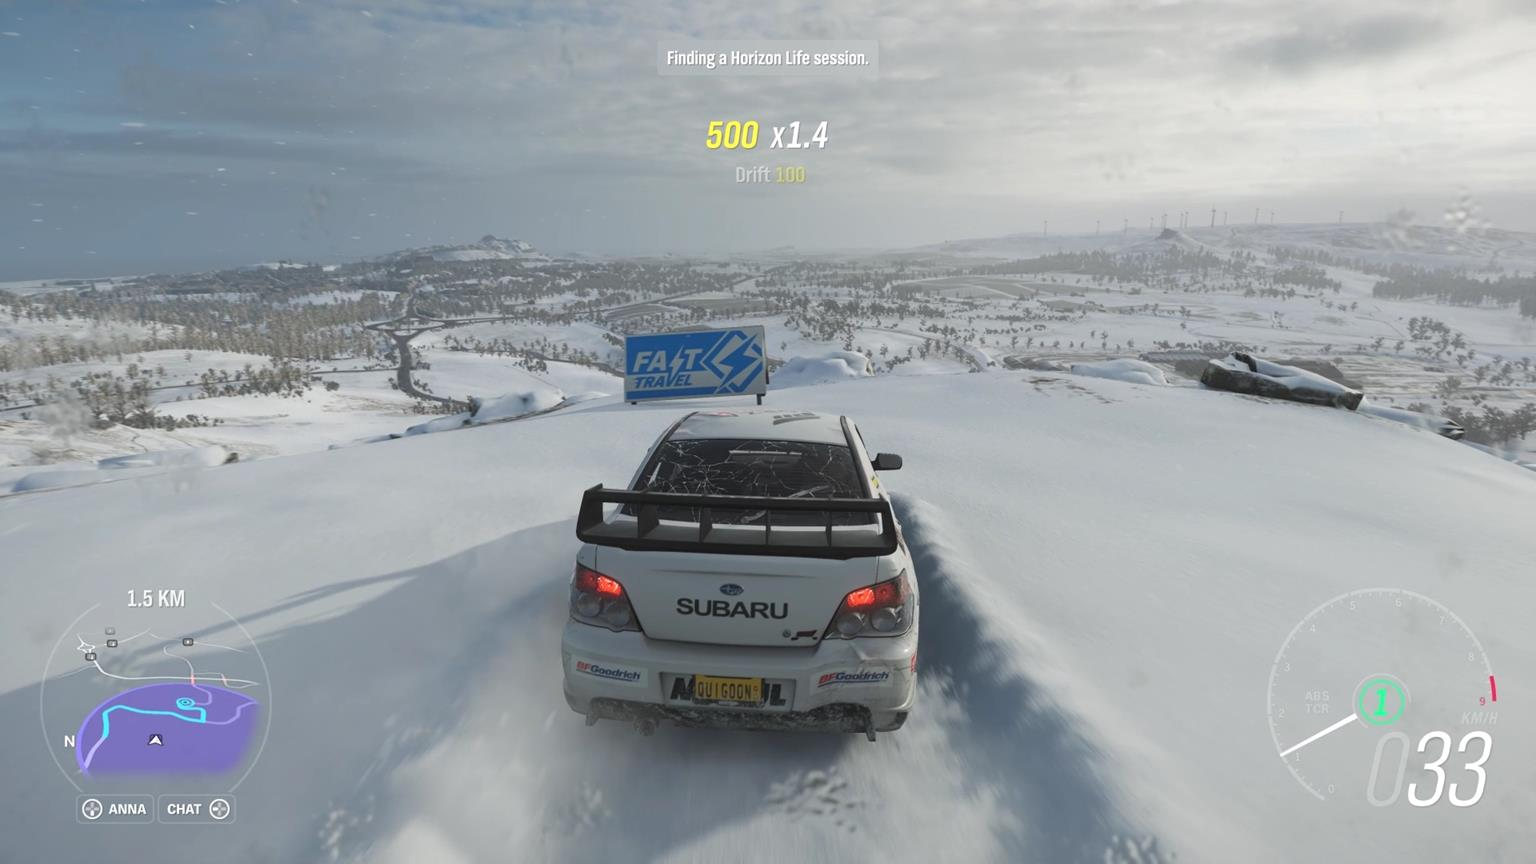 Forza Horizon 4 isn't just a great game, it's the perfect